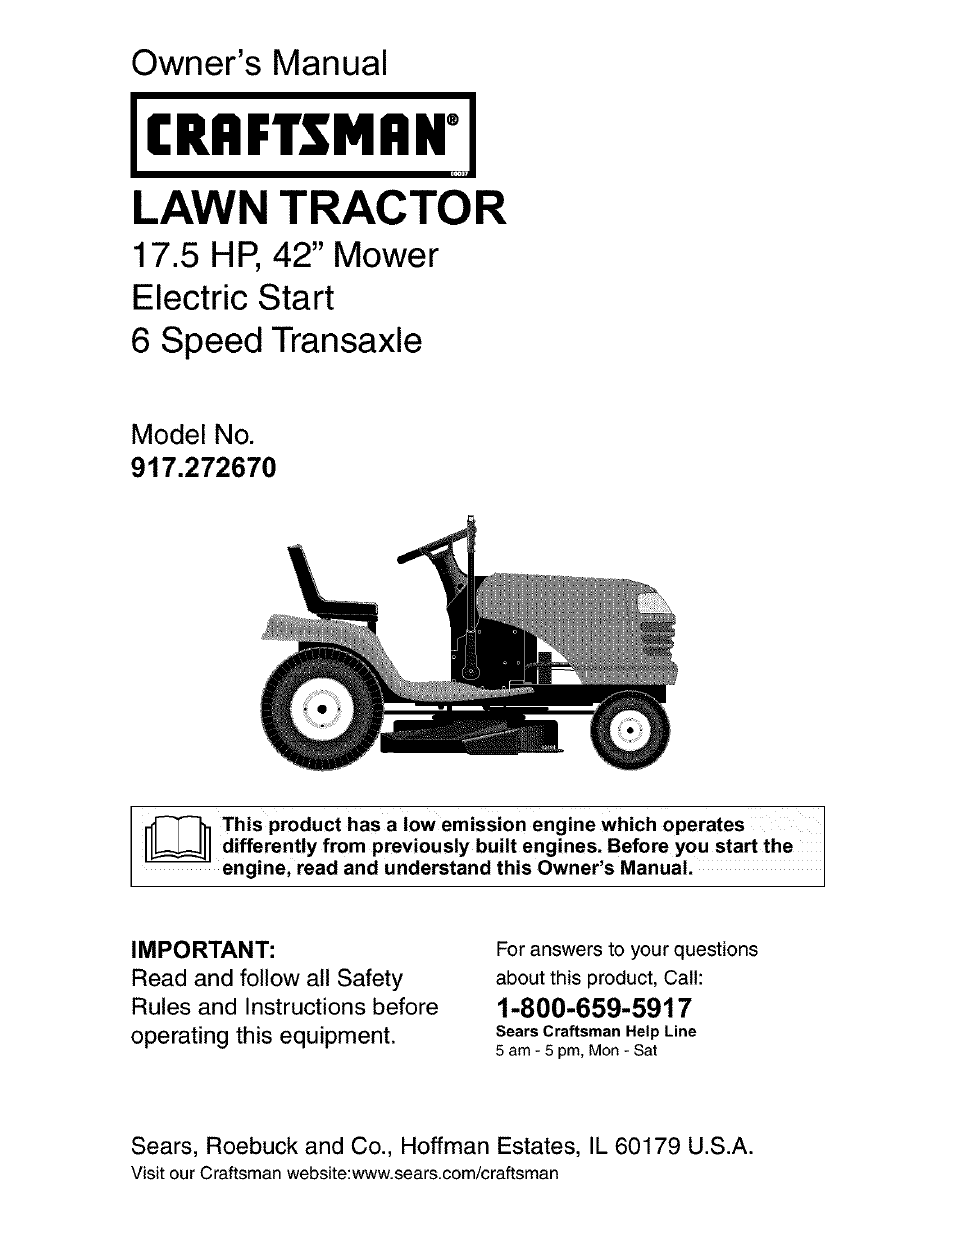 Craftsman Lt 1000 Wiring Diagram Page 4 And Sears Lawn Tractor Lt1000 Manual Enthusiast Diagrams U2022 Rh Rasalibre Co Parts